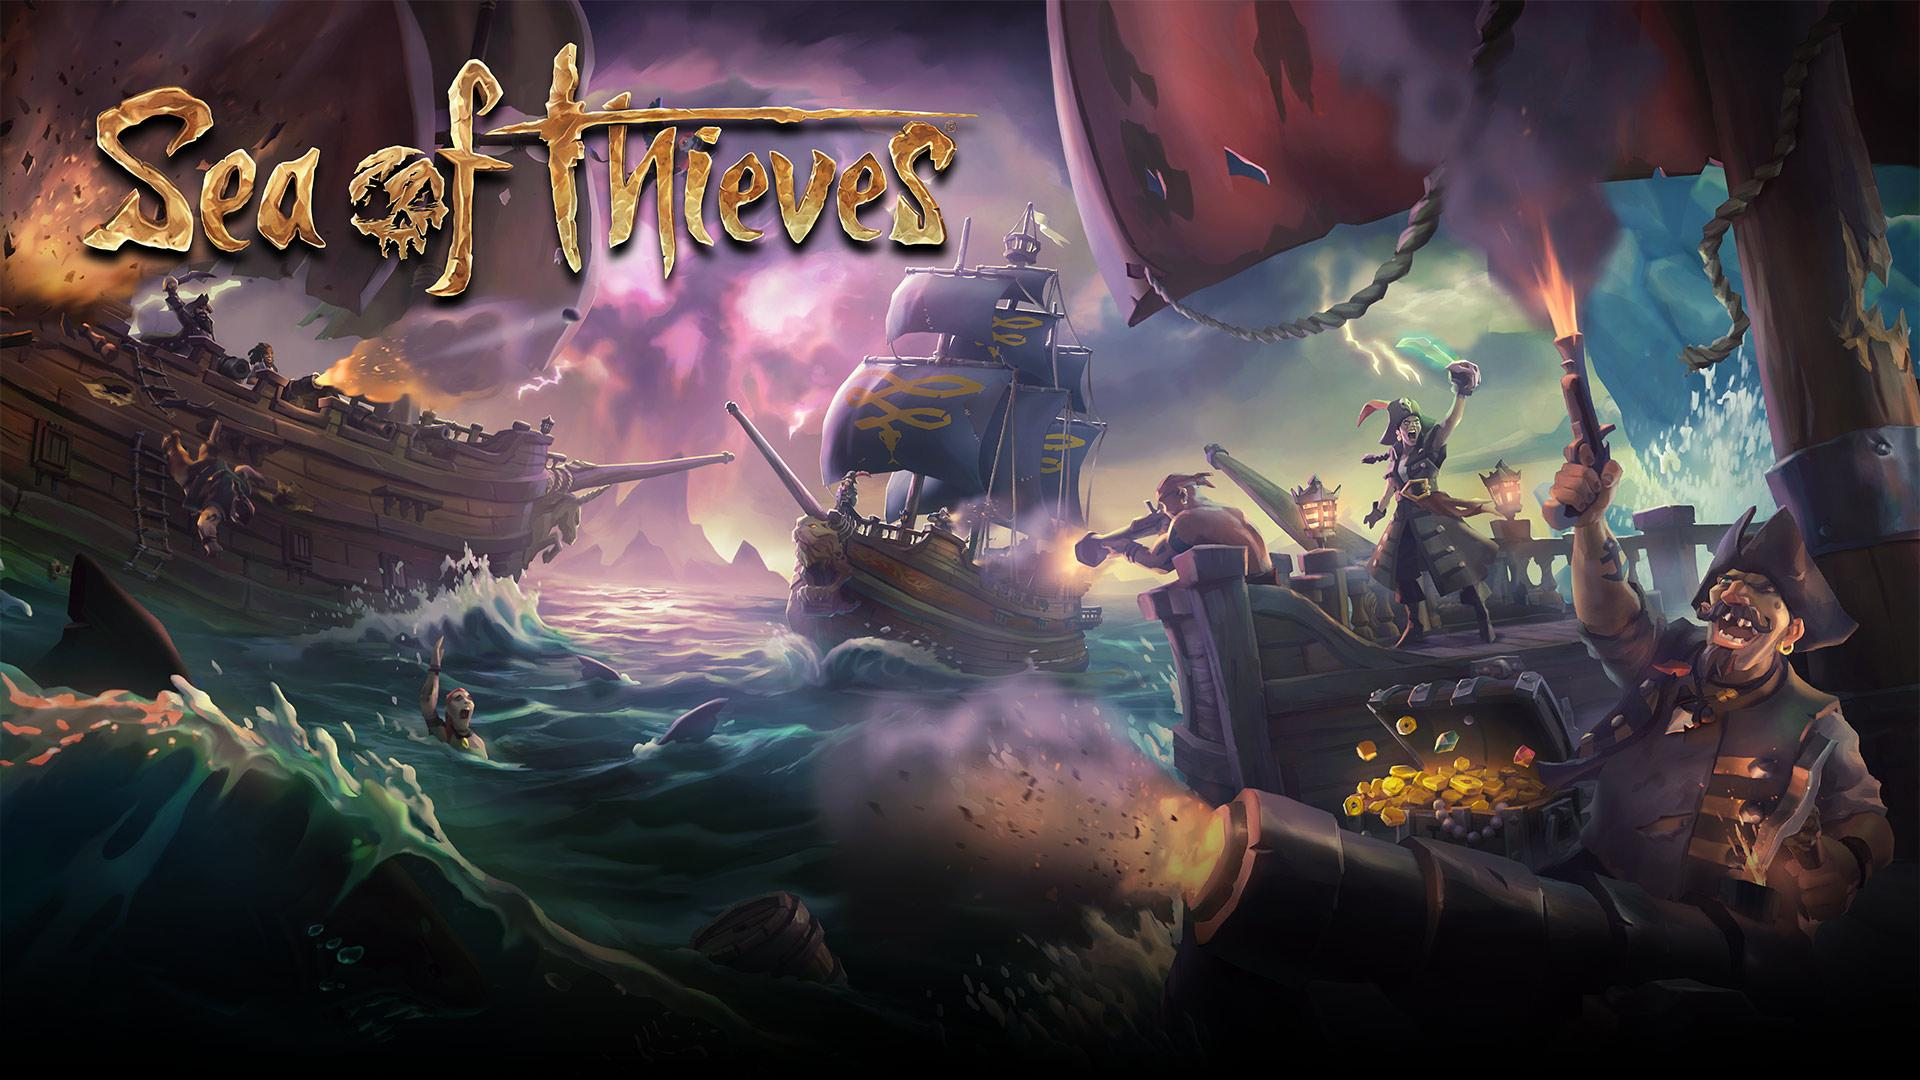 Sea of Thieves Update is Live